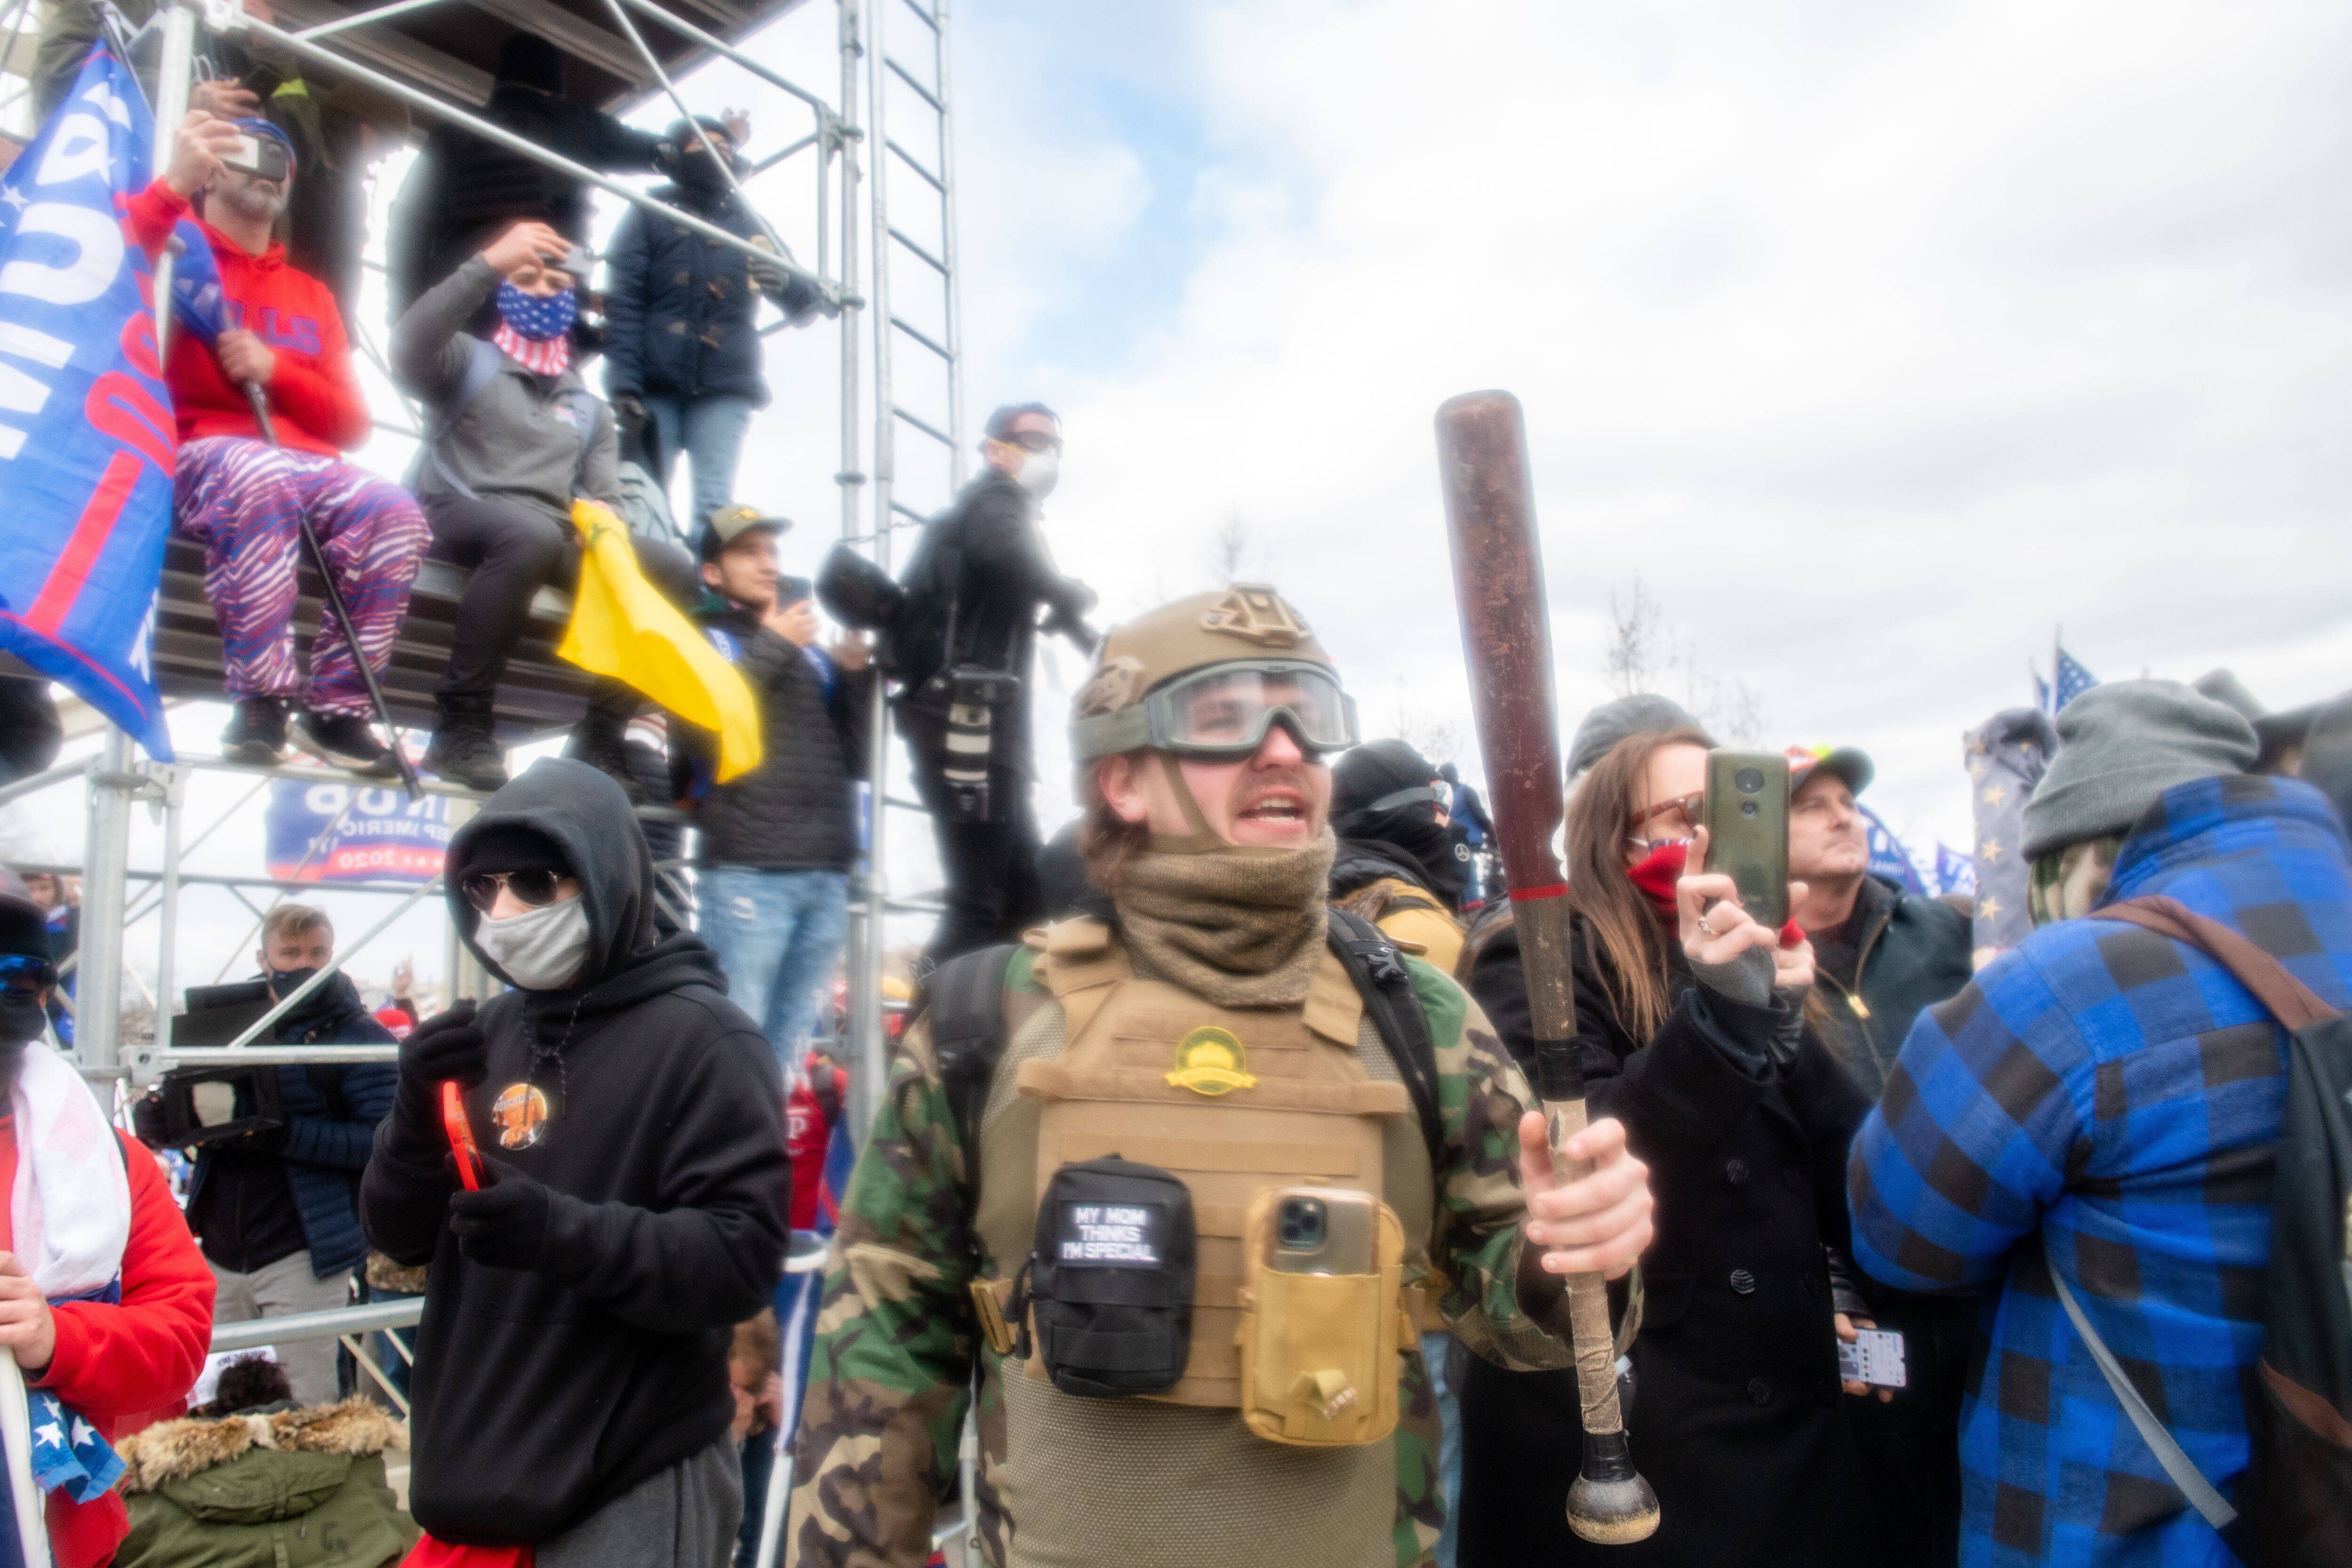 A man wields a baseball bat during the storming of the U.S. Capitol on Jan. 6 by a pro-Trump mob. (Amy Harris/Shutterstock)